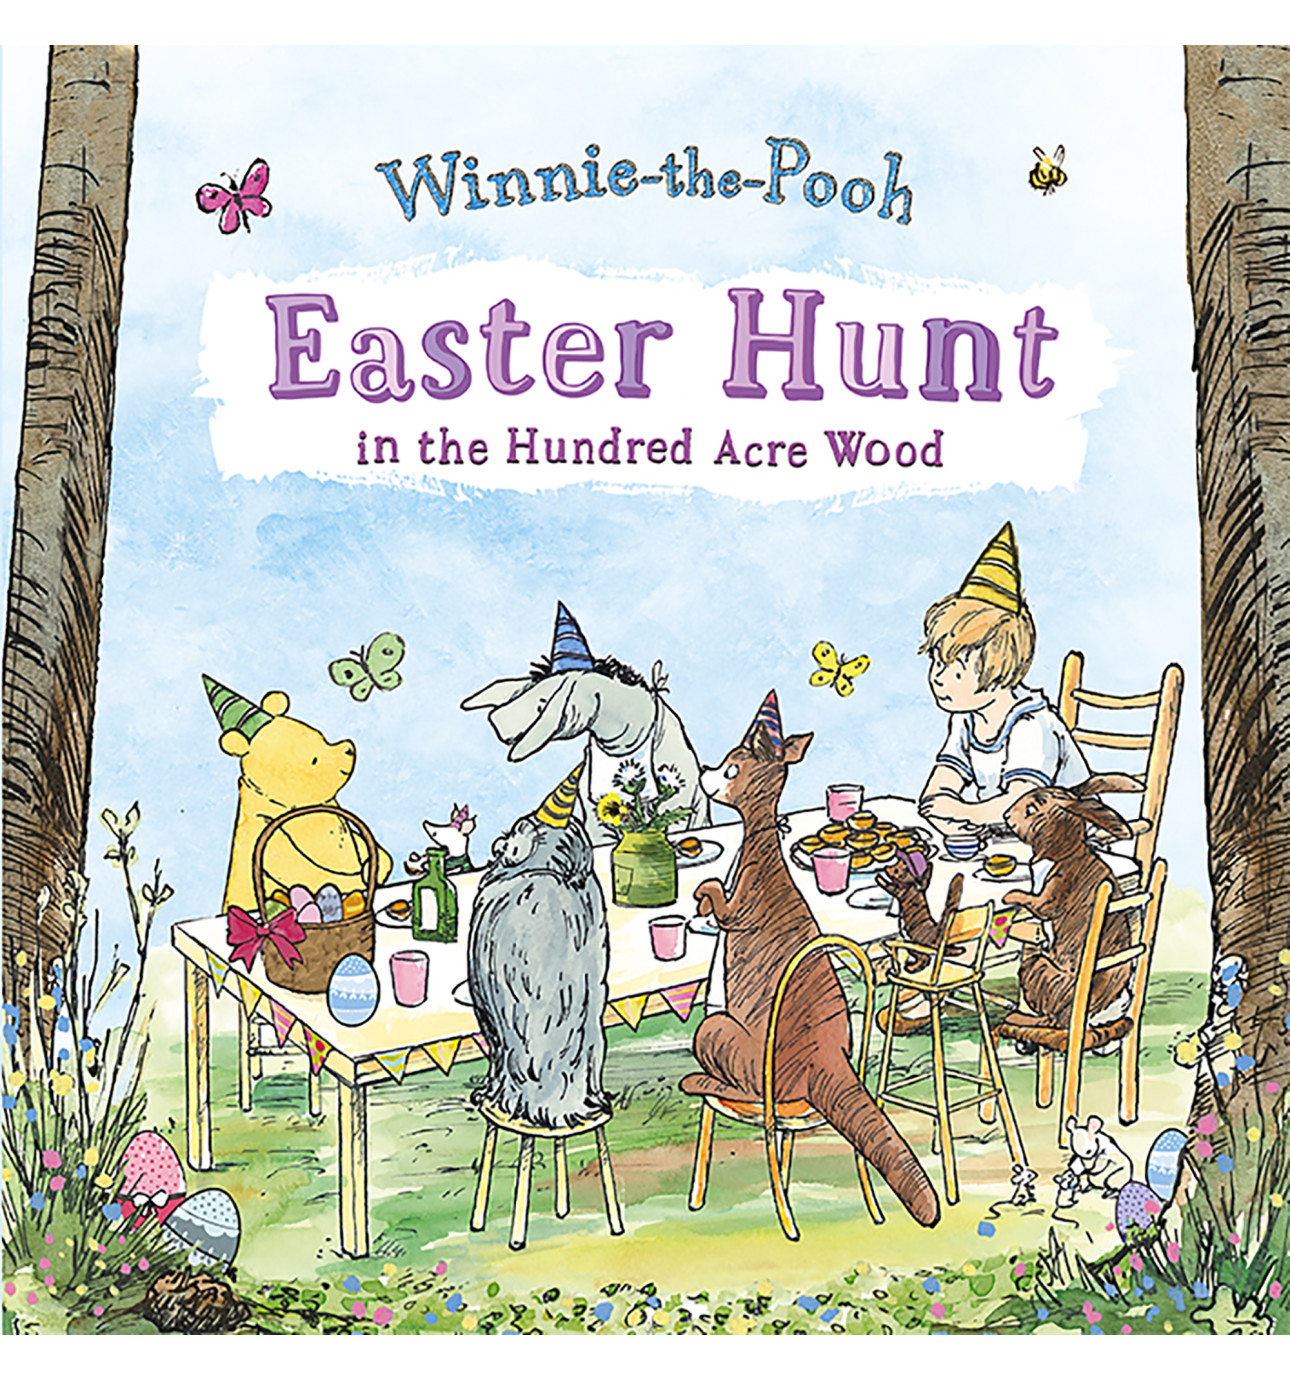 Easter hunt in the hundred acre wood david jones content negle Gallery